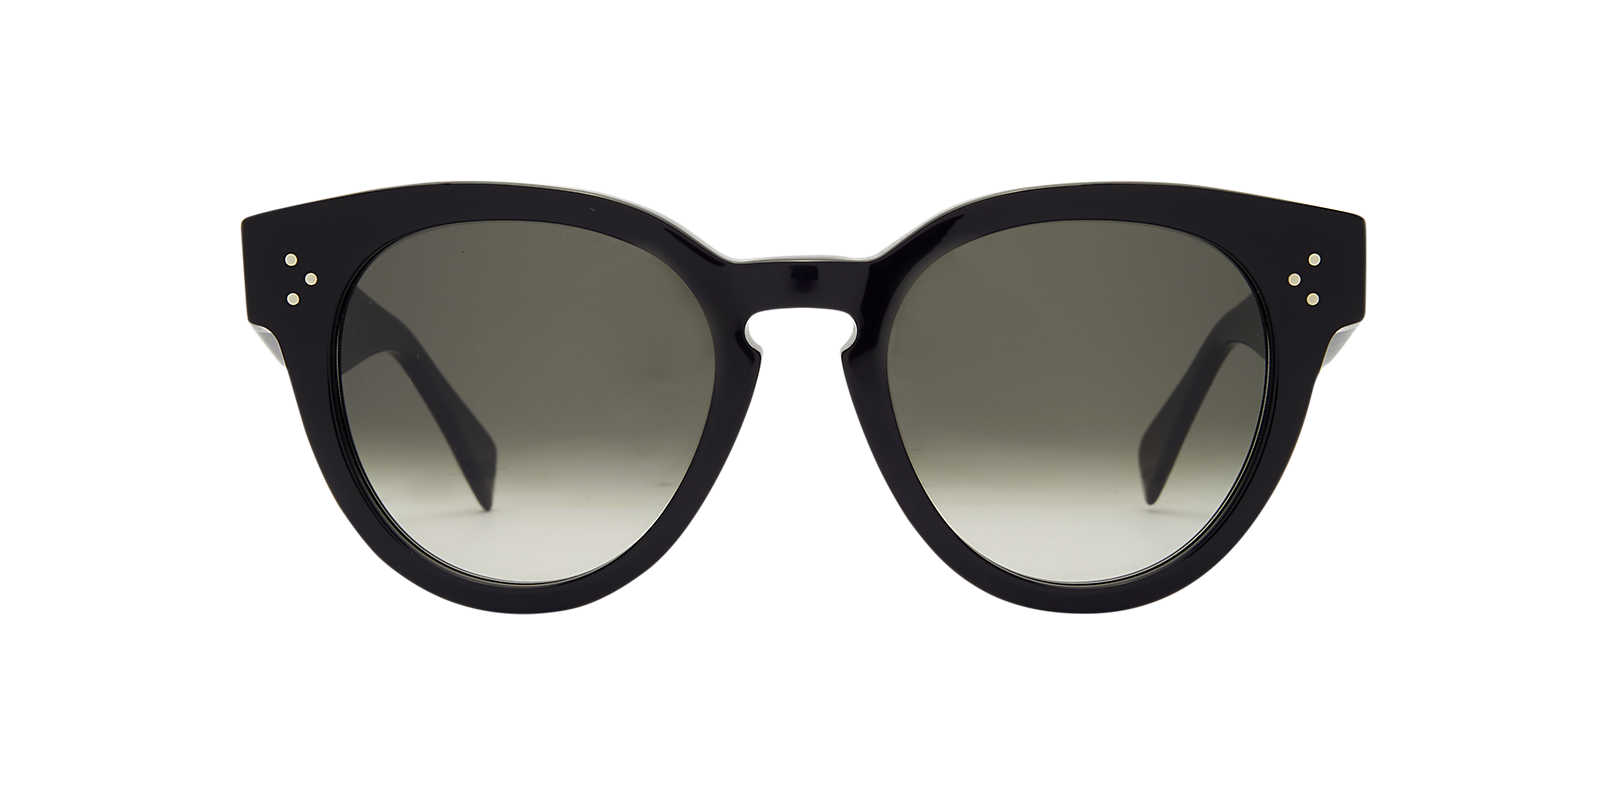 celine gray ryg1  CELINE Black CL41049/S Grey lenses 52mm